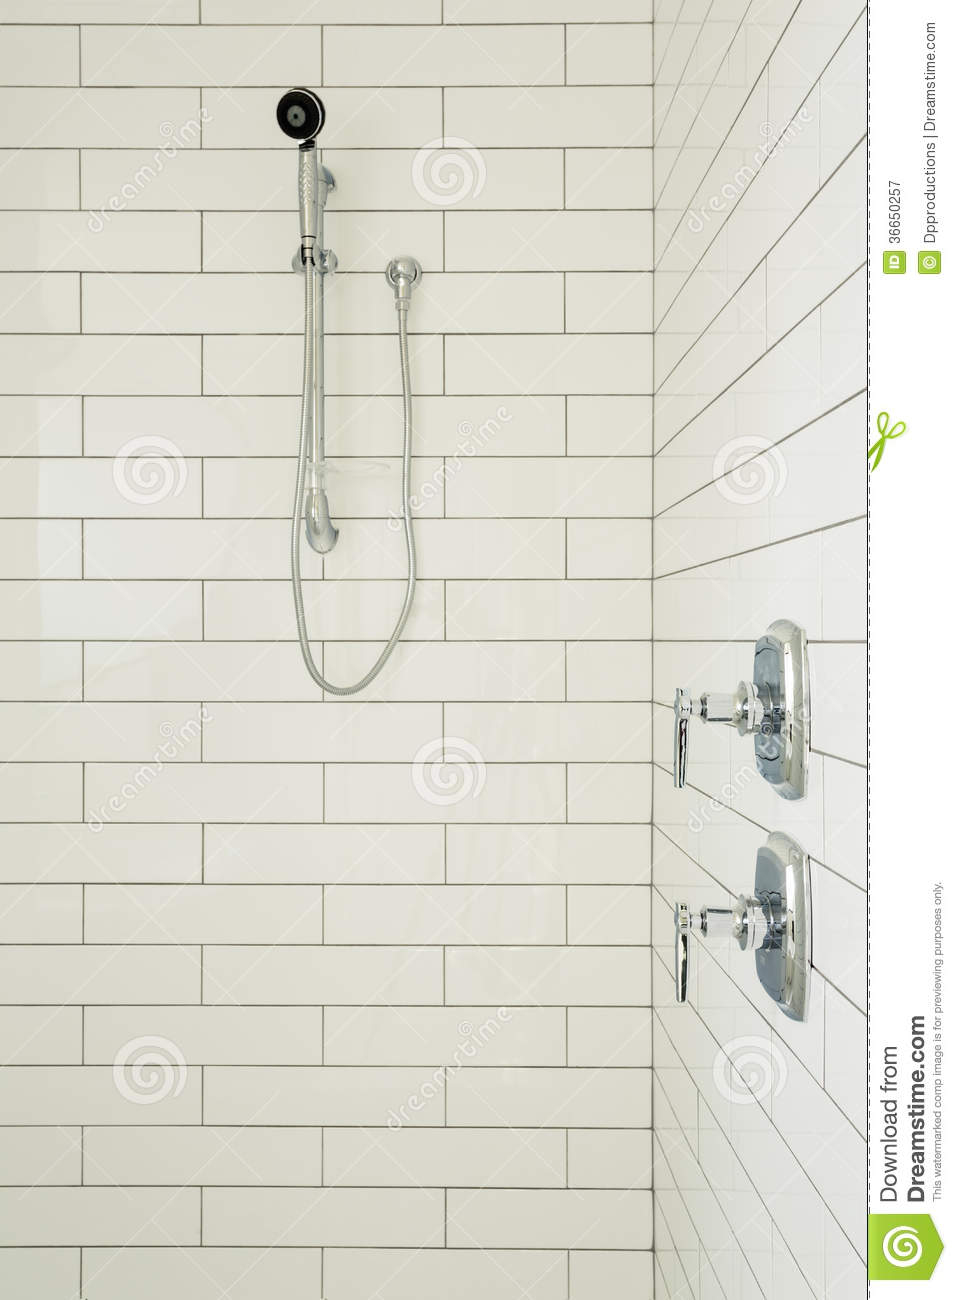 Master Bathroom Shower Stock Image Image Of Interior